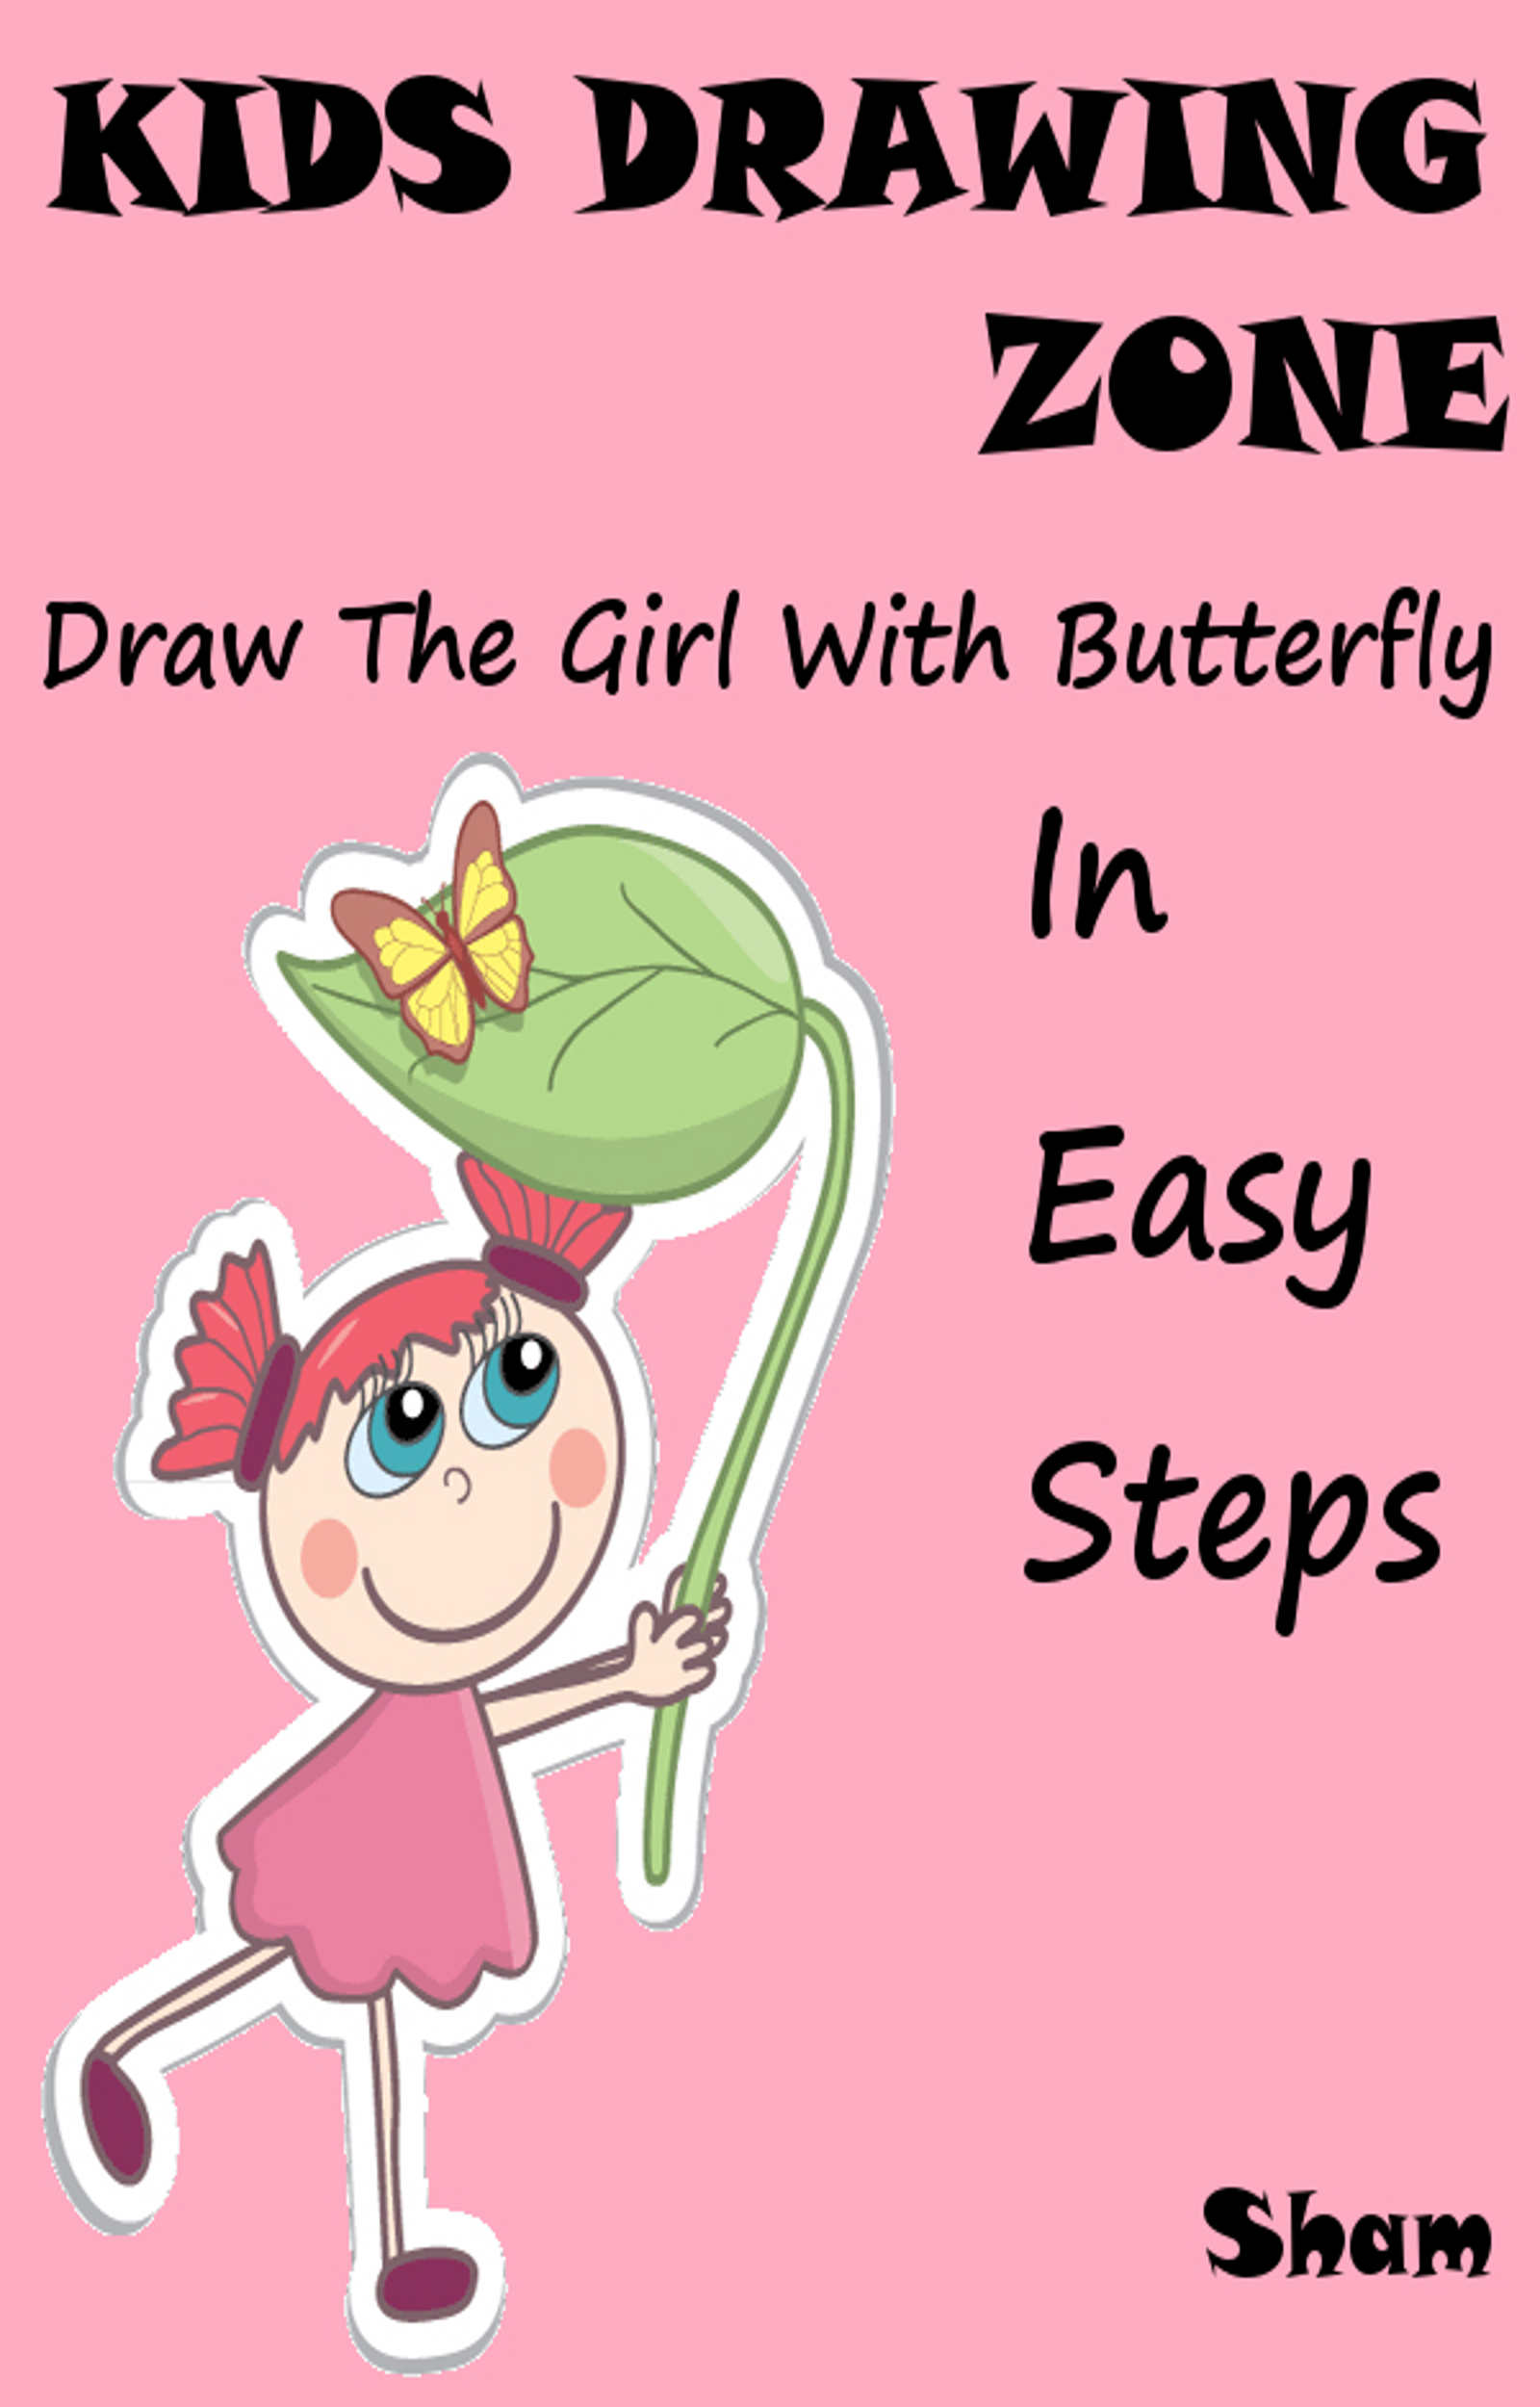 Sham - Kids Drawing Zone: Draw The Girl With Butterfly In Easy Steps